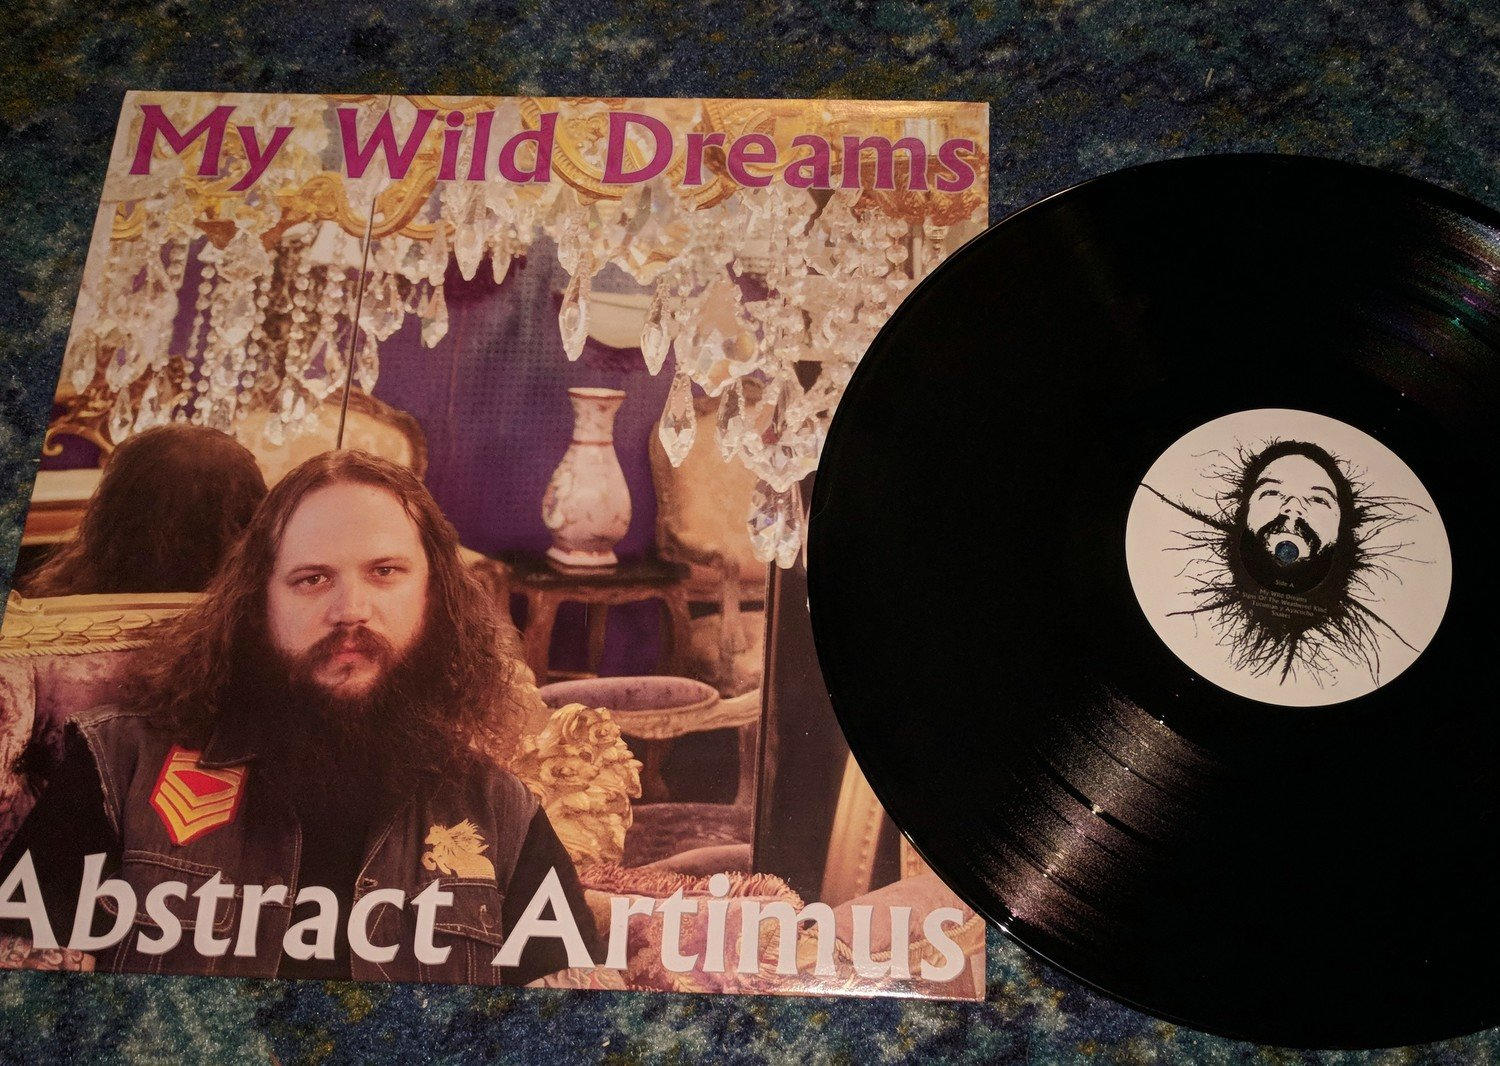 'My Wild Dreams' Limited Edition 45rpm LP